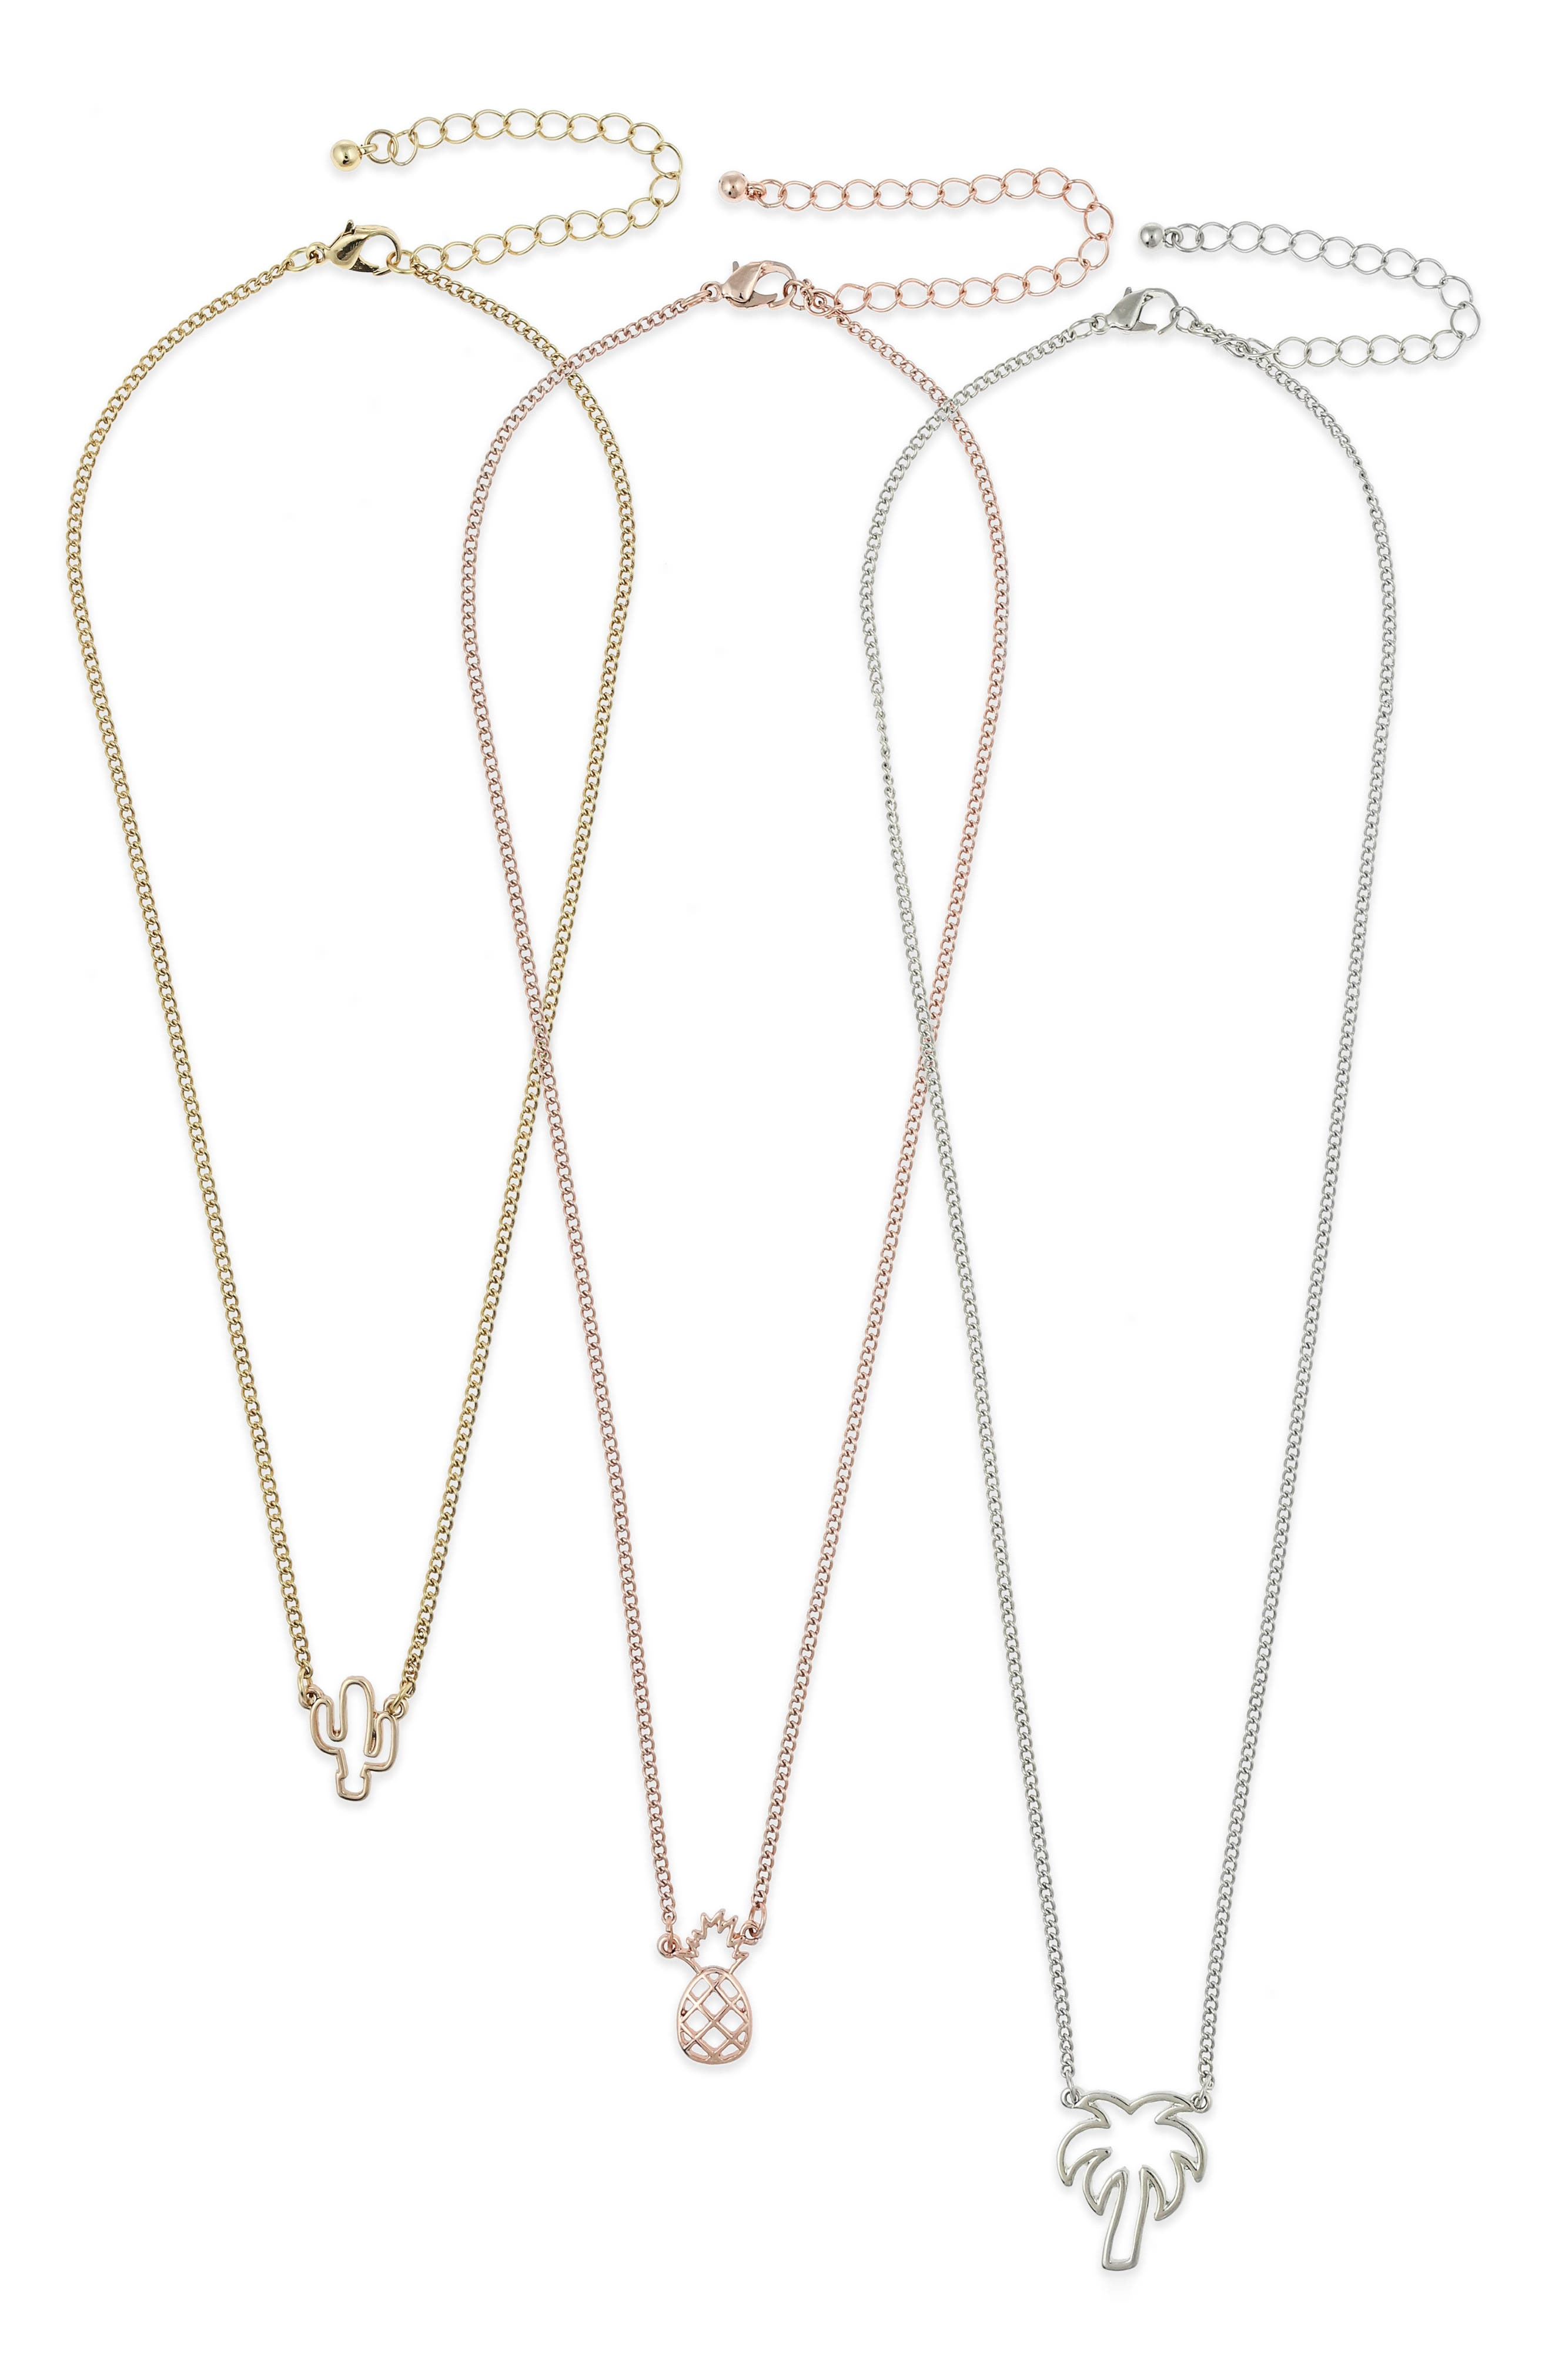 Girls' Necklaces Jewelry: Bracelets, Charms & Necklaces